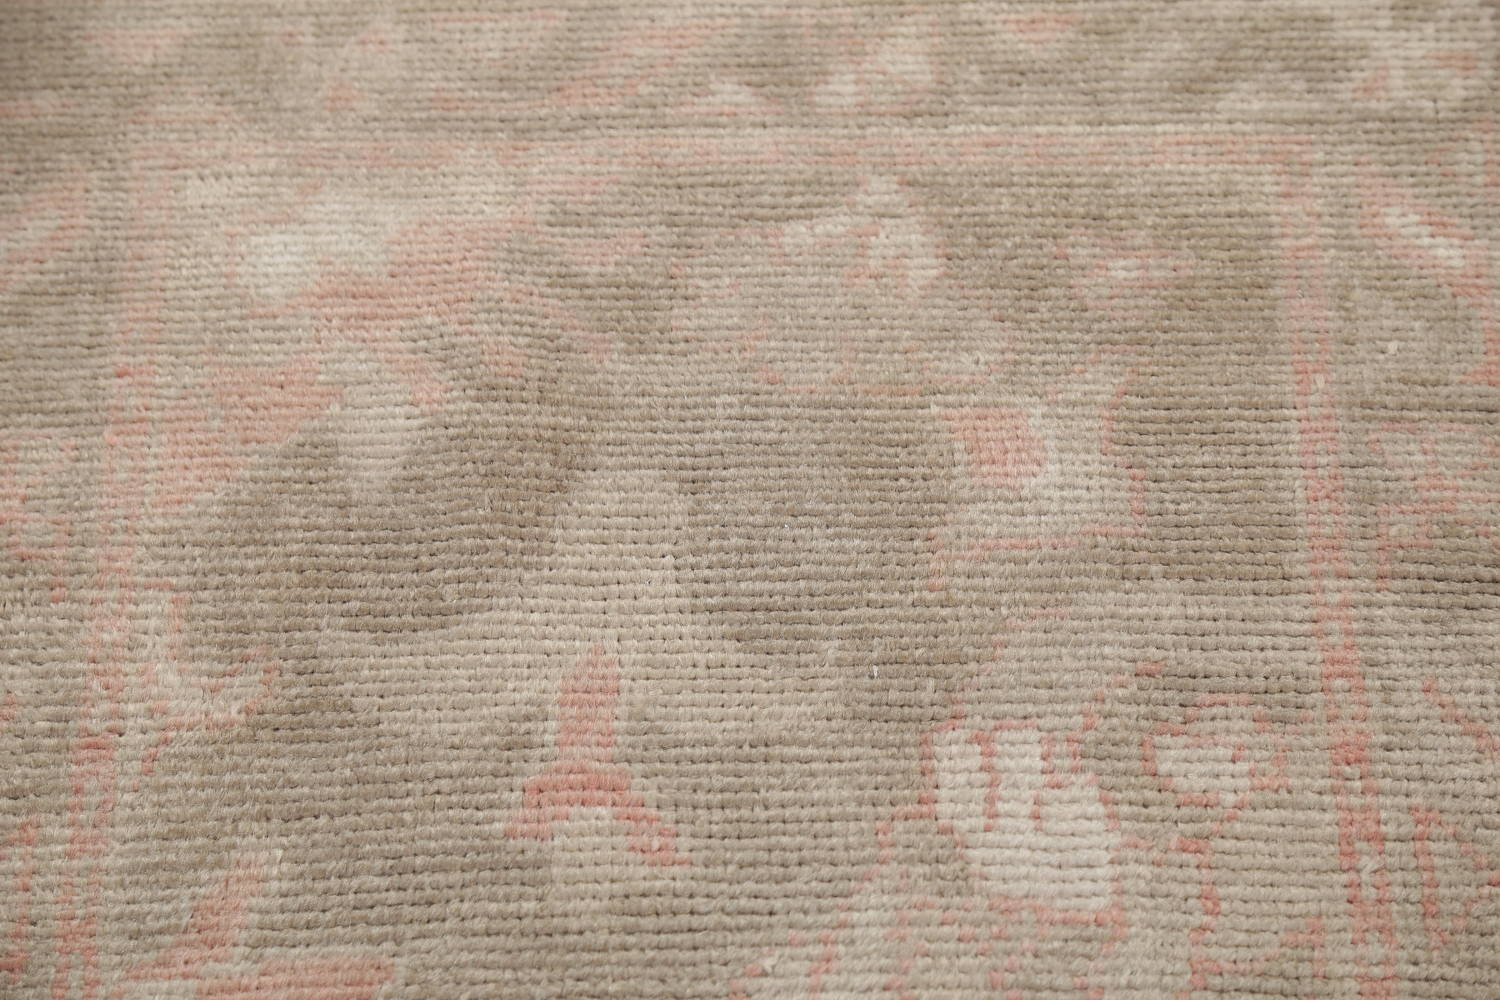 Vegetable Dye Muted Green Oushak Turkish Hand-Knotted Runner Rug 2x12 image 11